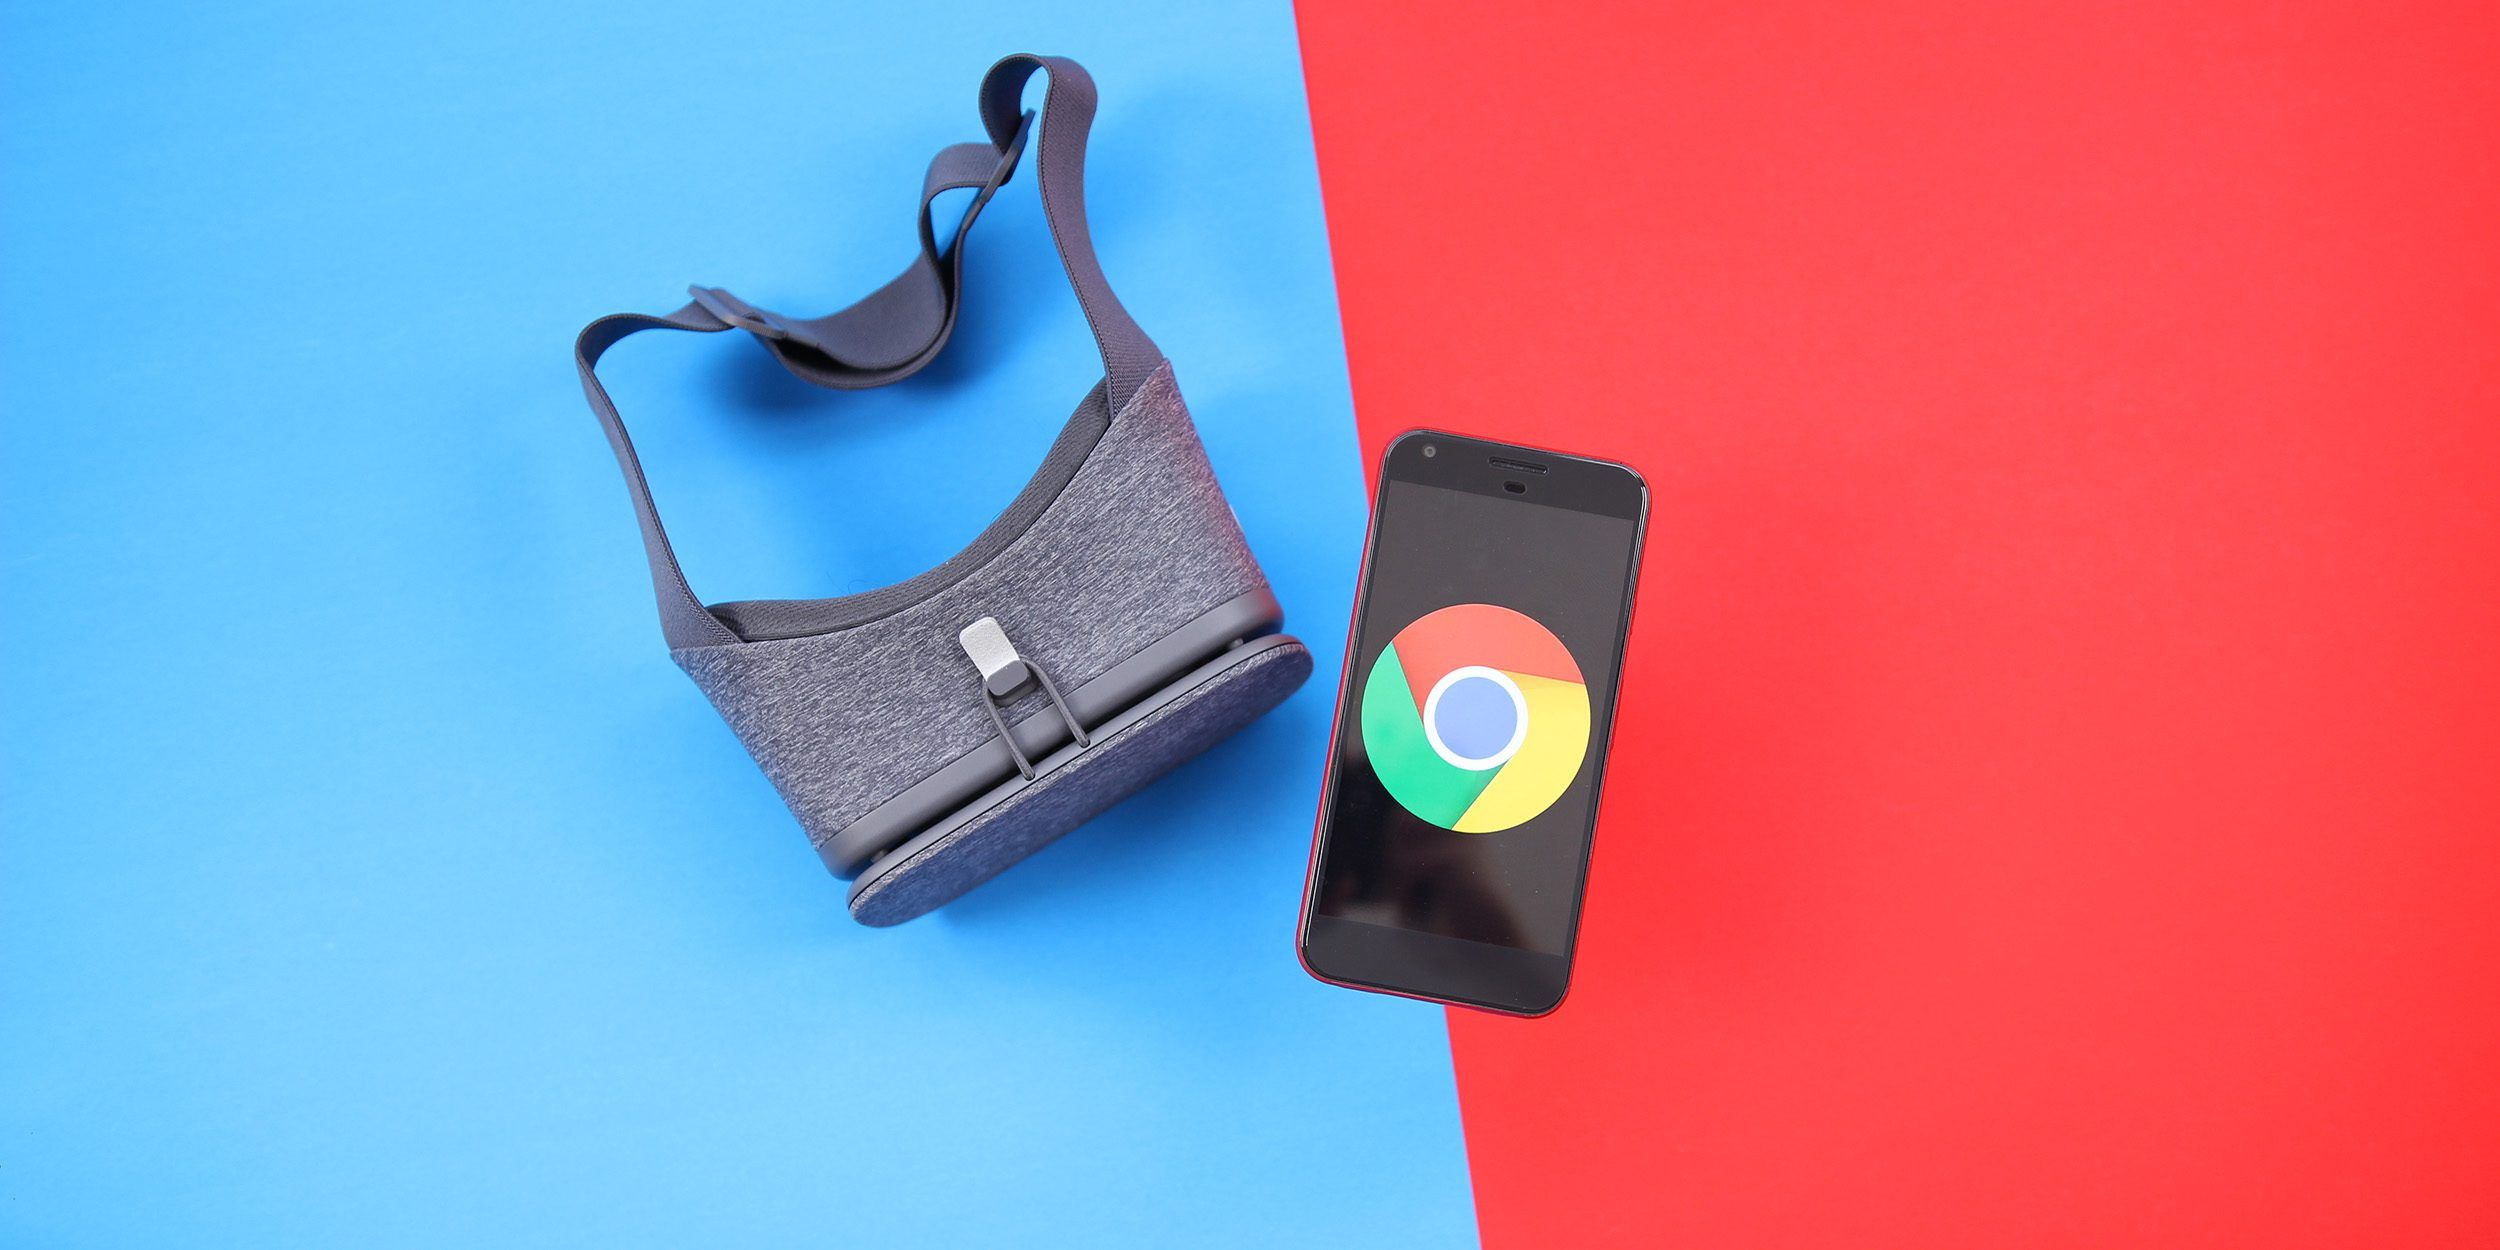 Chrome now allows any webpage to be displayed in Daydream VR